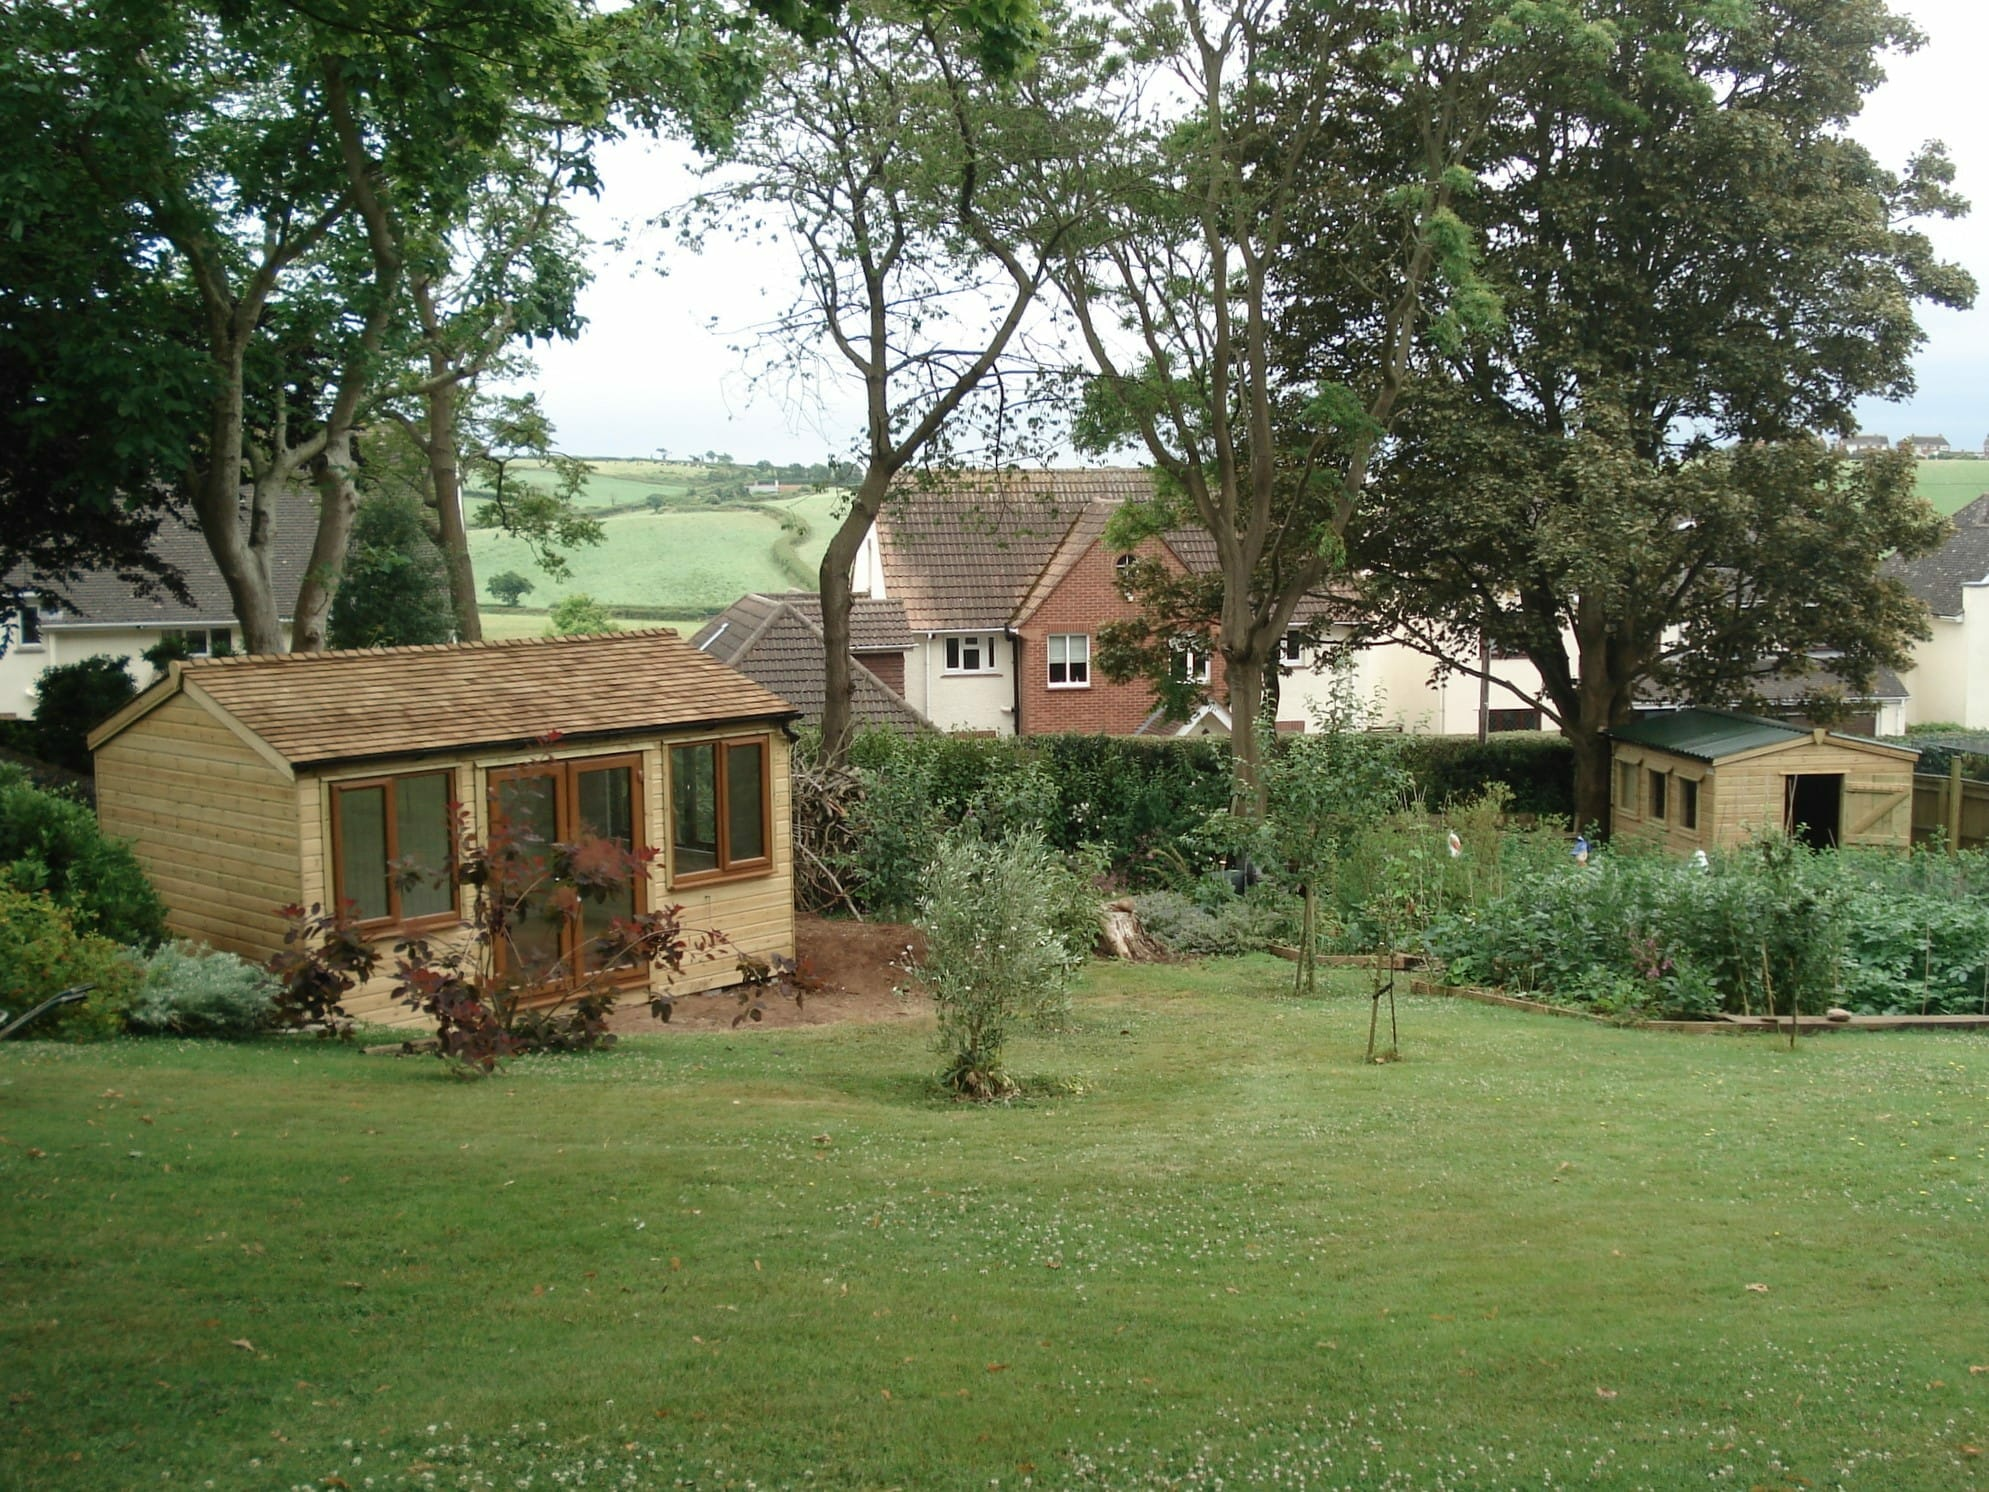 Large garden with summerhouse and shed